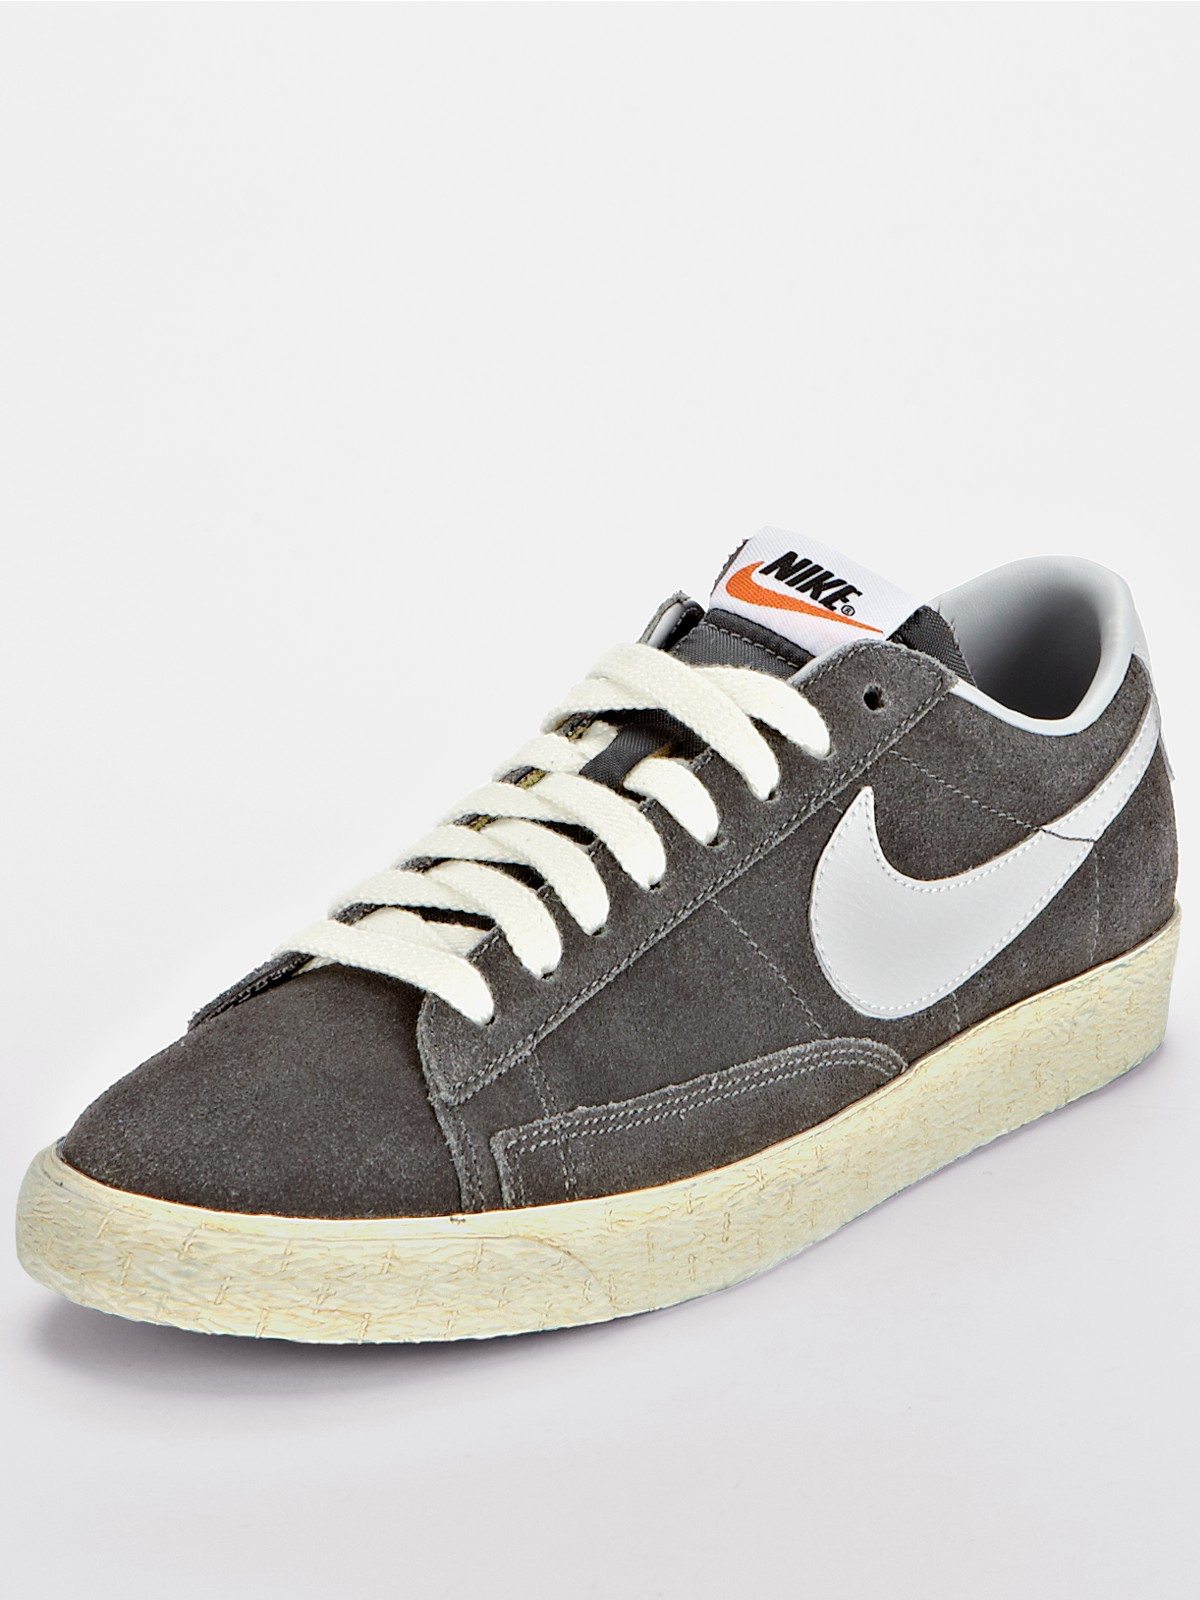 Shop the latest selection of Nike Blazer Shoes at Foot Locker. Find the hottest sneaker drops from brands like Jordan, Nike, Under Armour, New Balance, and a .